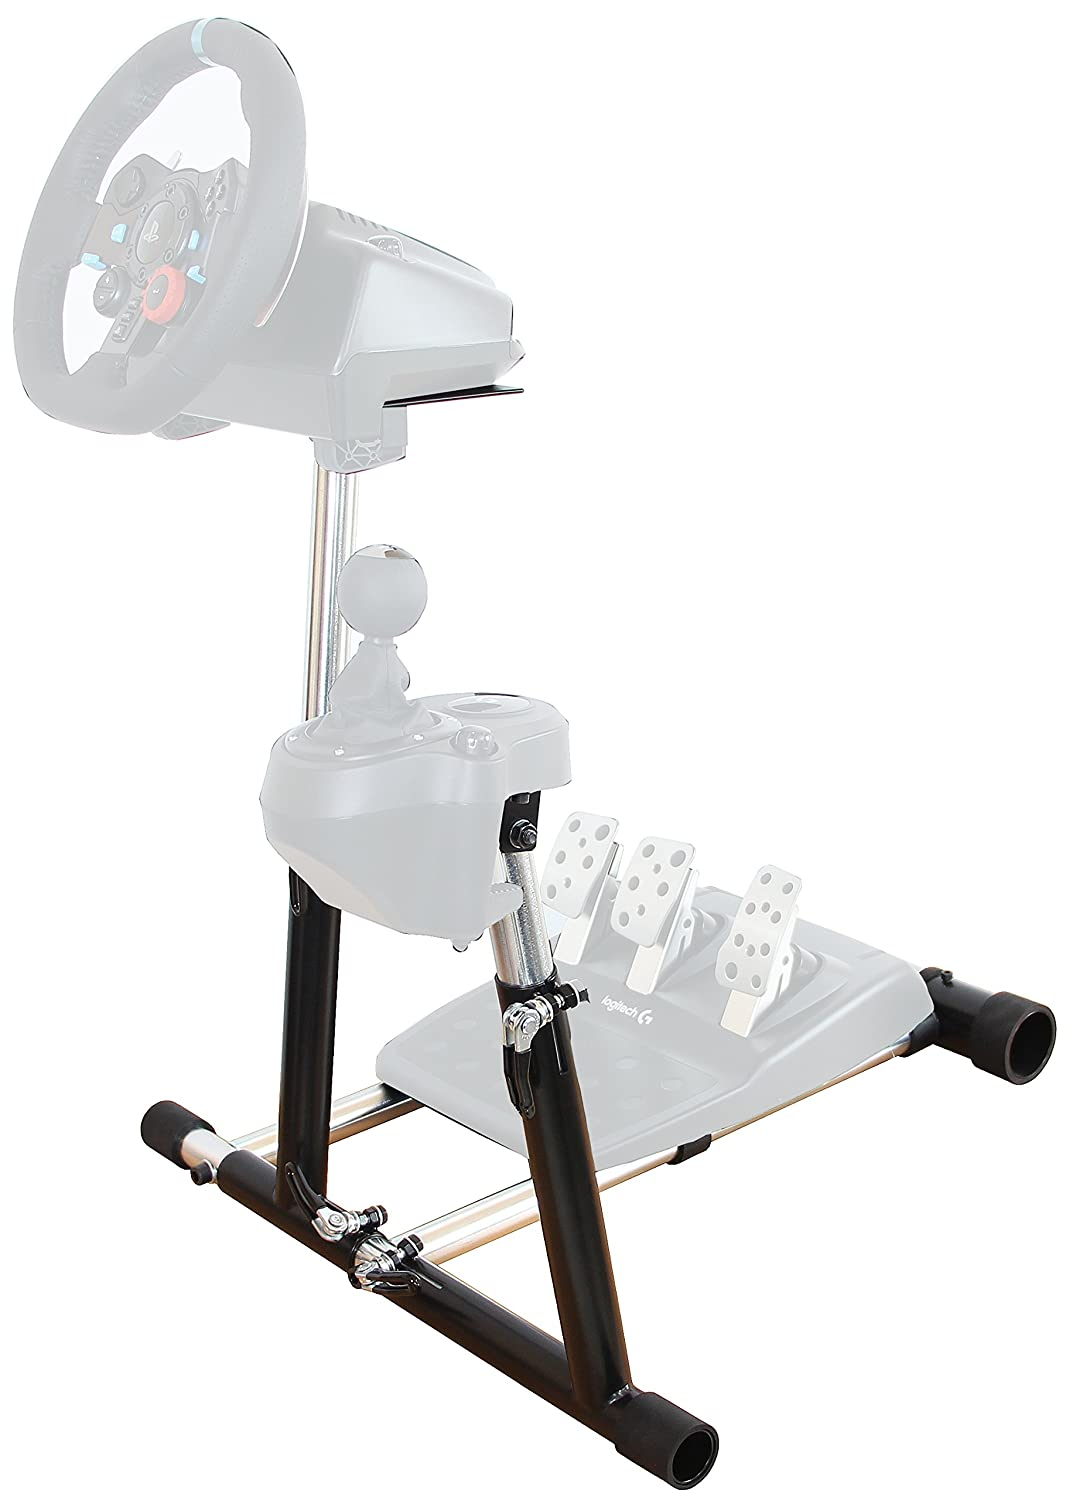 af06824549b Wheel Stand Pro SuperG Steering with RGS shifter mount compatible with  Logitech G29, G920 G27 G25 Wheels, Deluxe V2, Wheel and Pedals Not included.